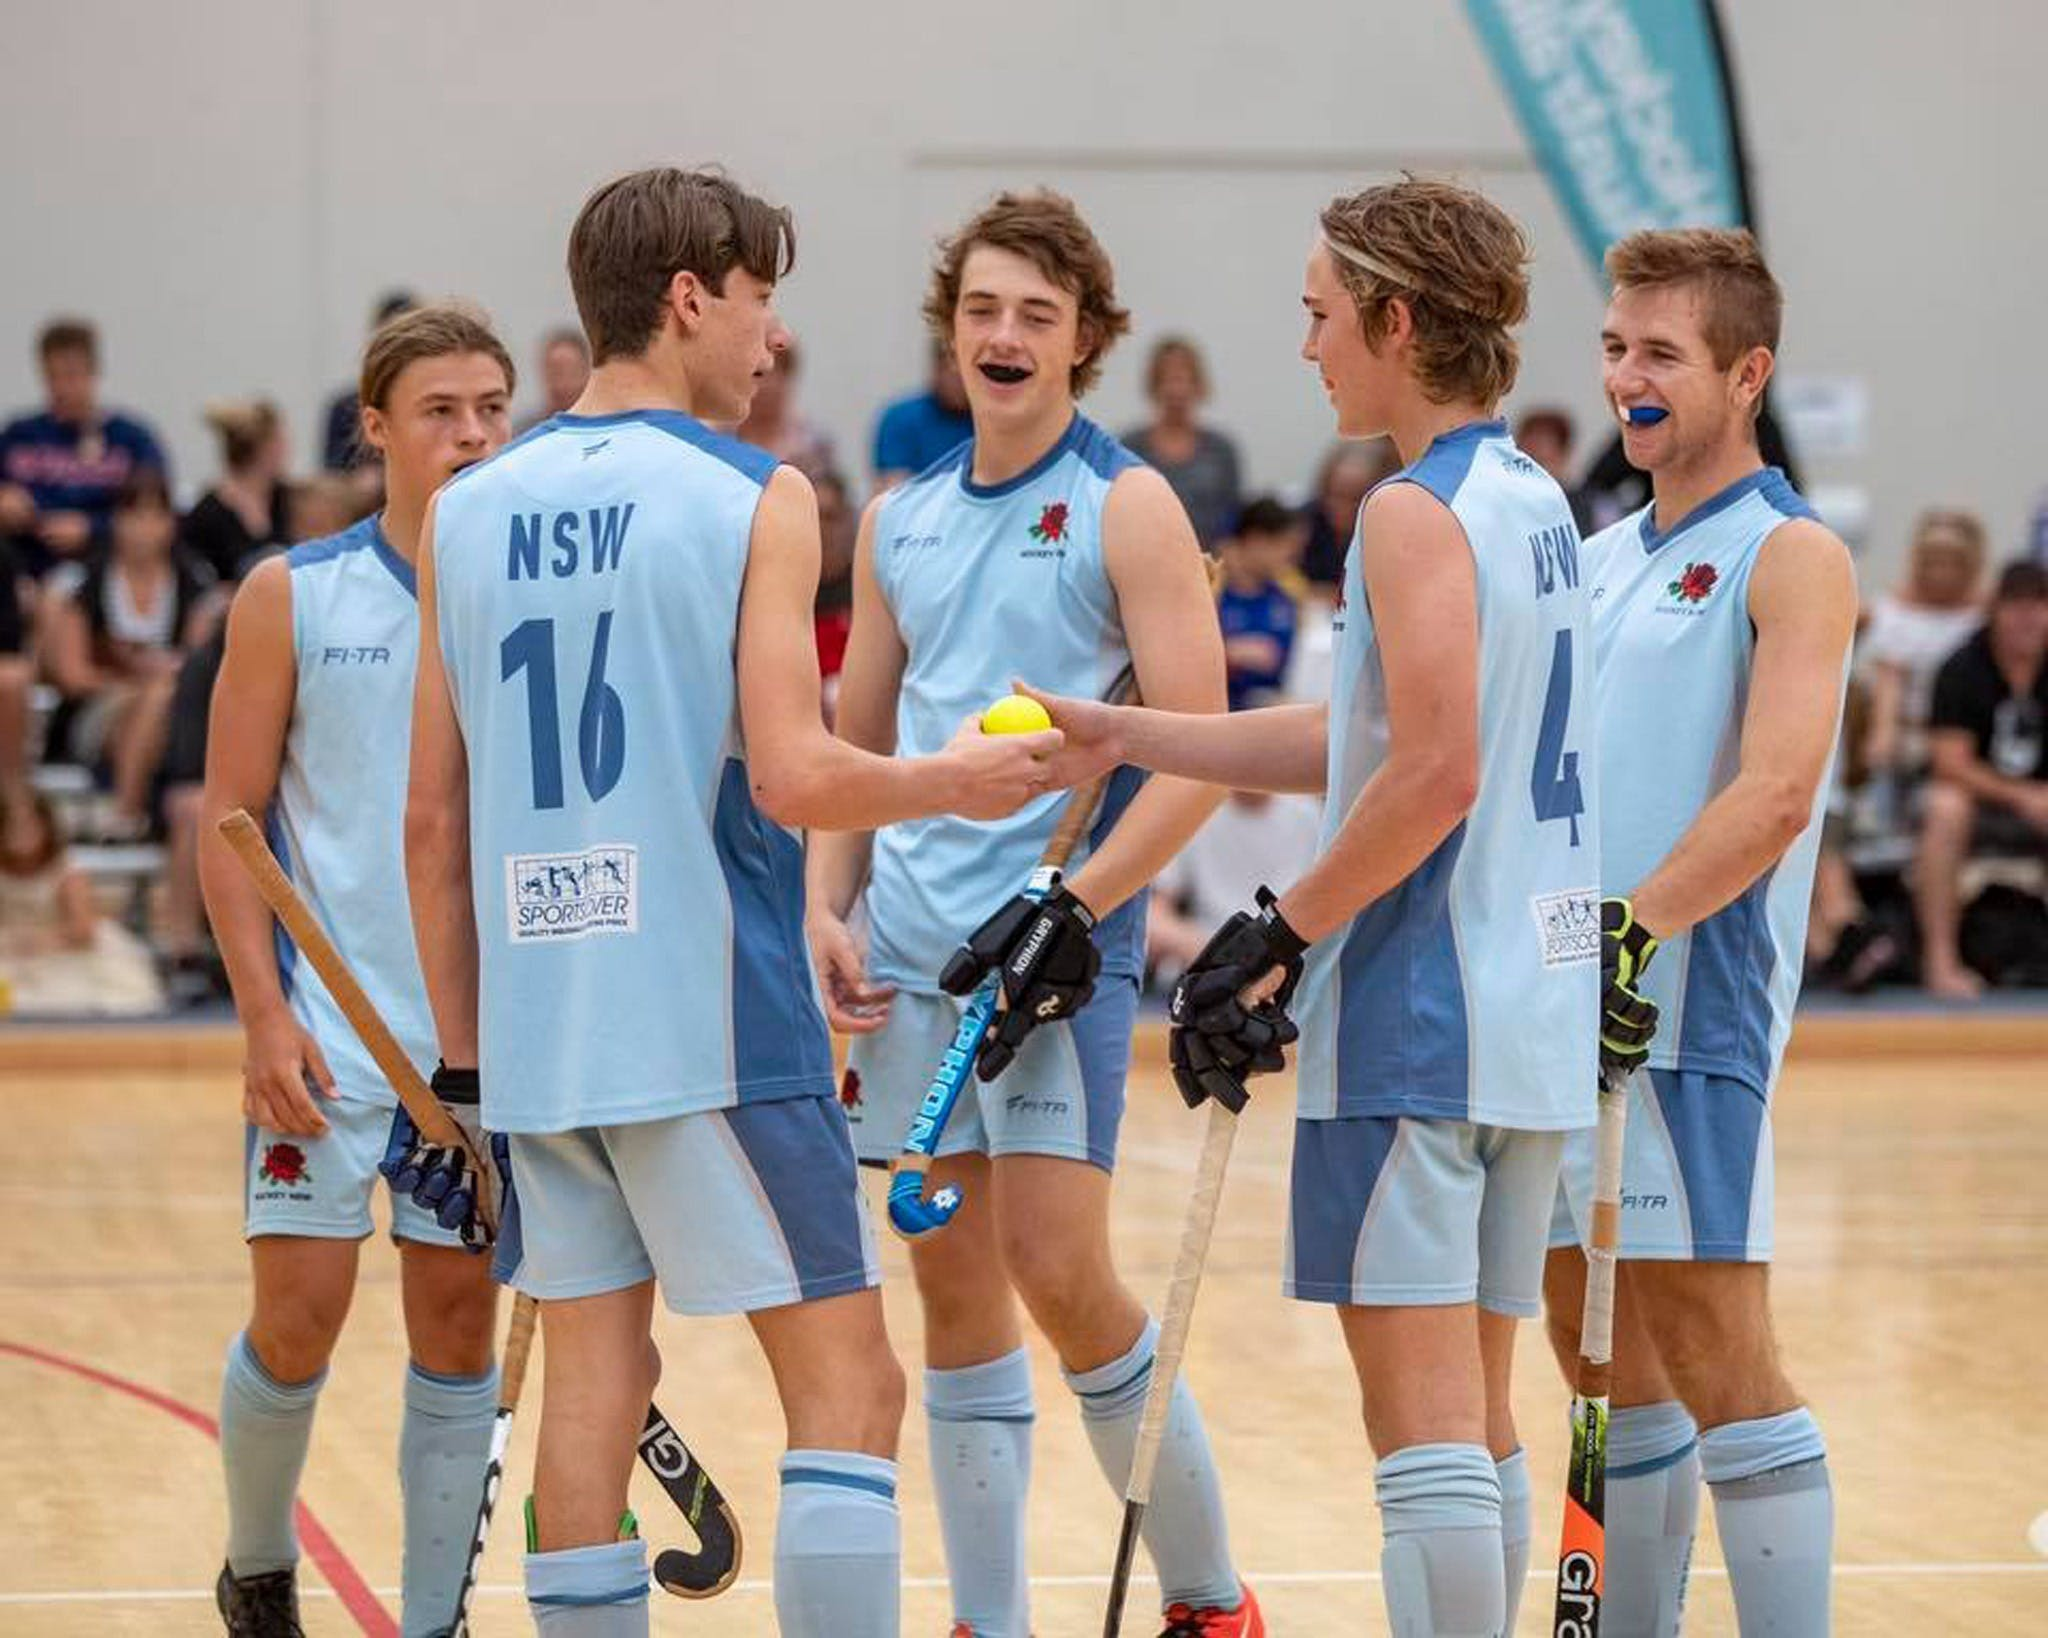 Hockey NSW Indoor State Championship  Open Men - VIC Tourism